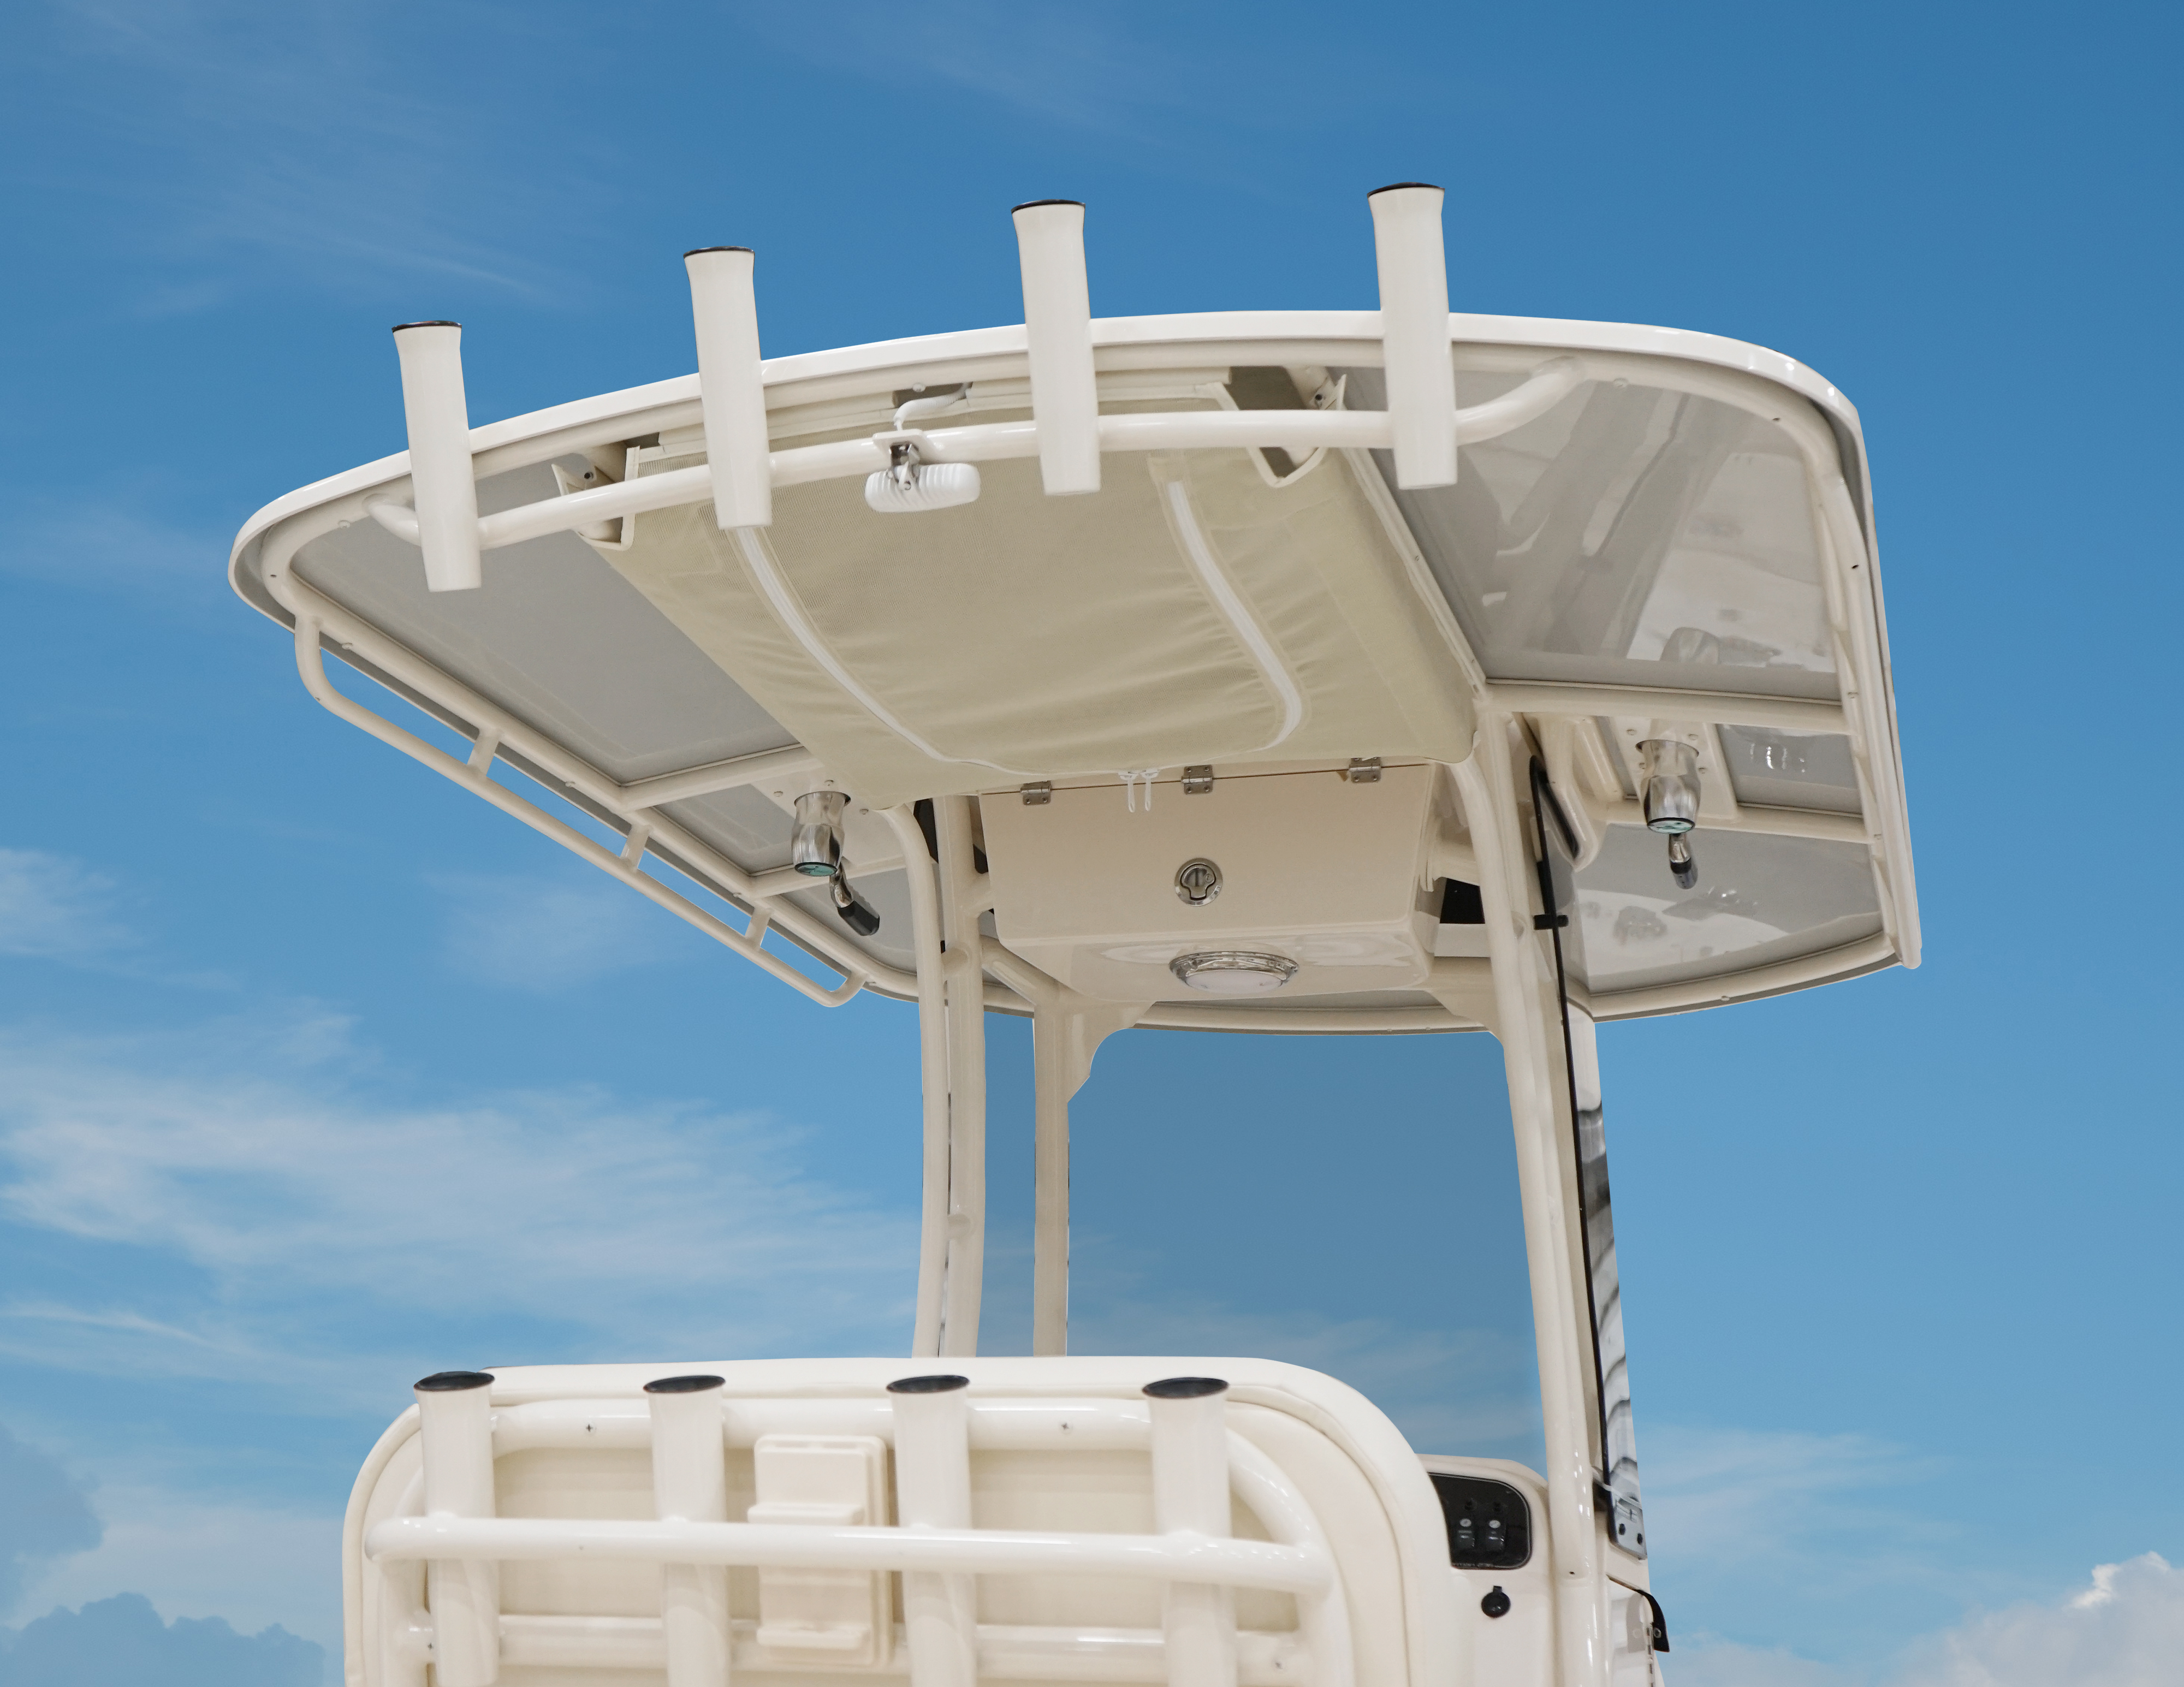 Grady White Fisherman 236, 23-foot center console boat with underside T-Top color match